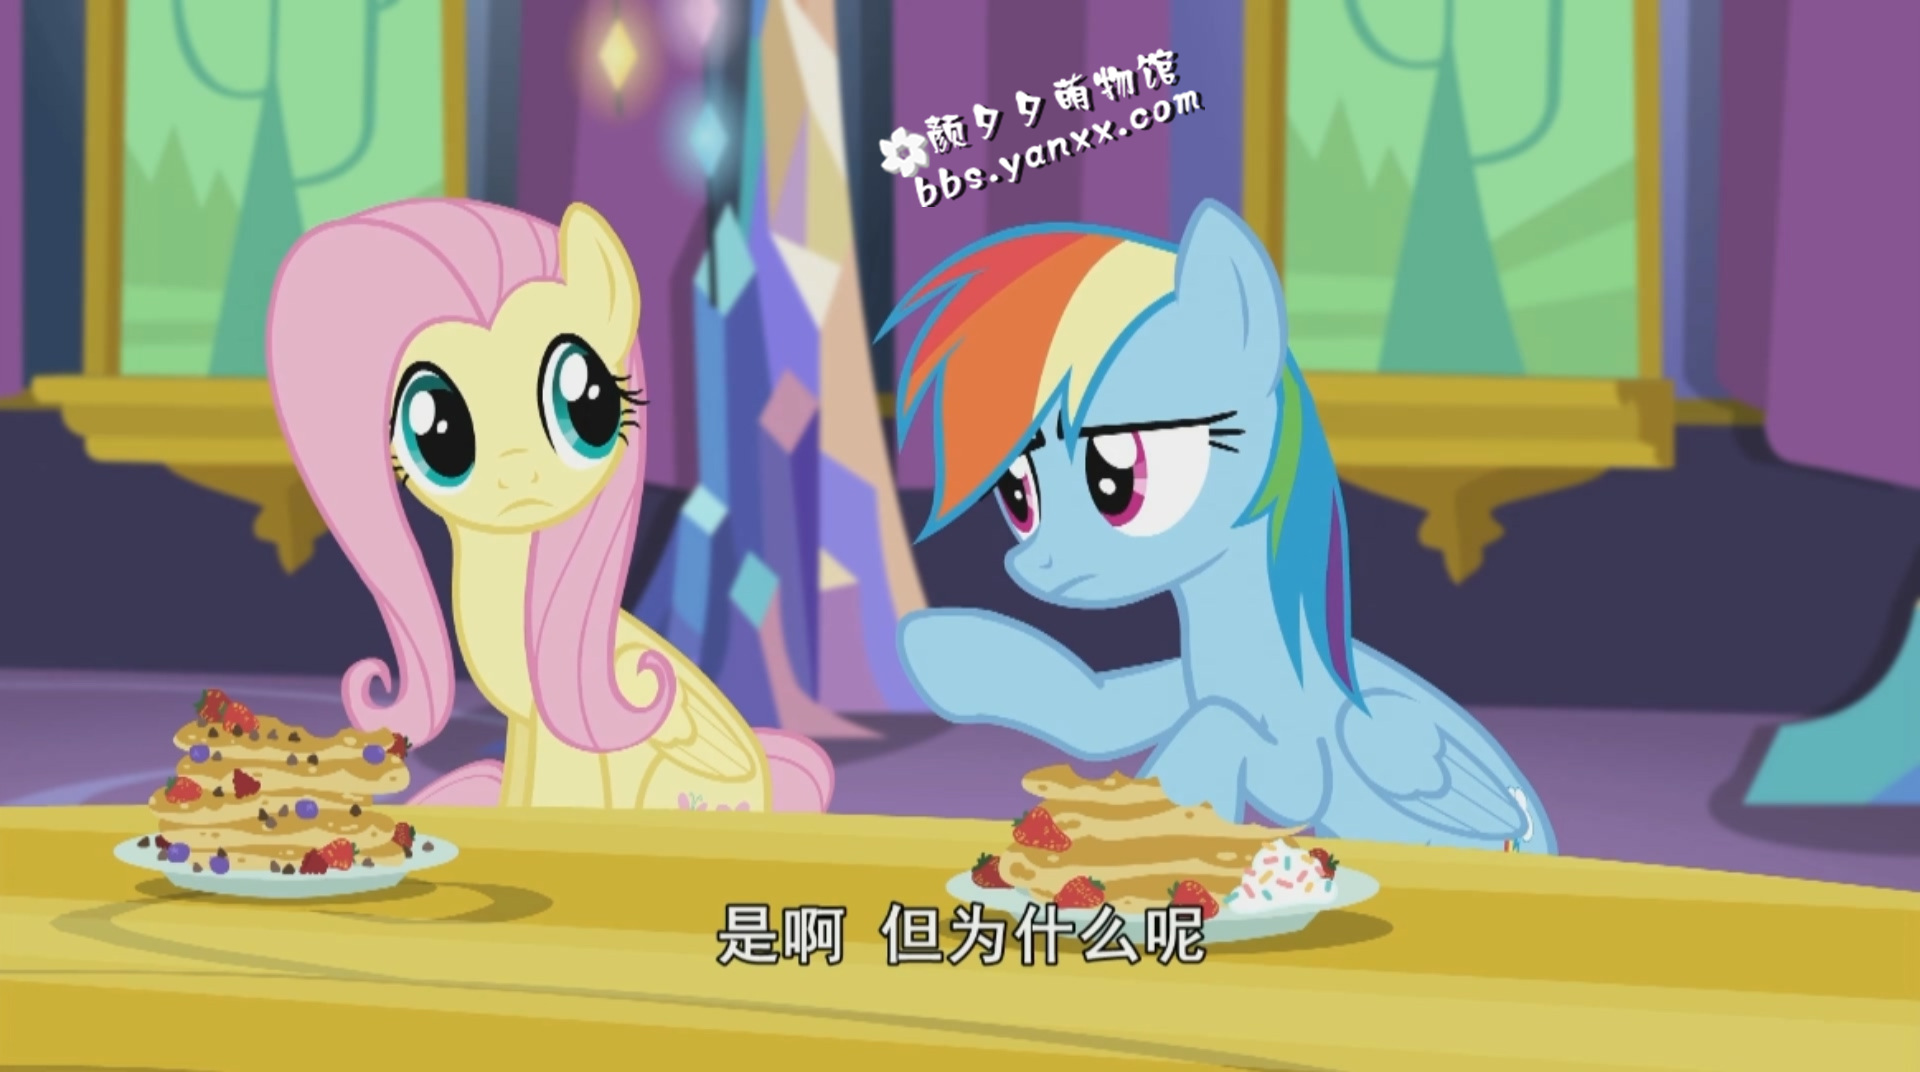 小马宝莉中文版第五季 My Little Pony 全26集 MP4格式高清1080P 百度网盘下载